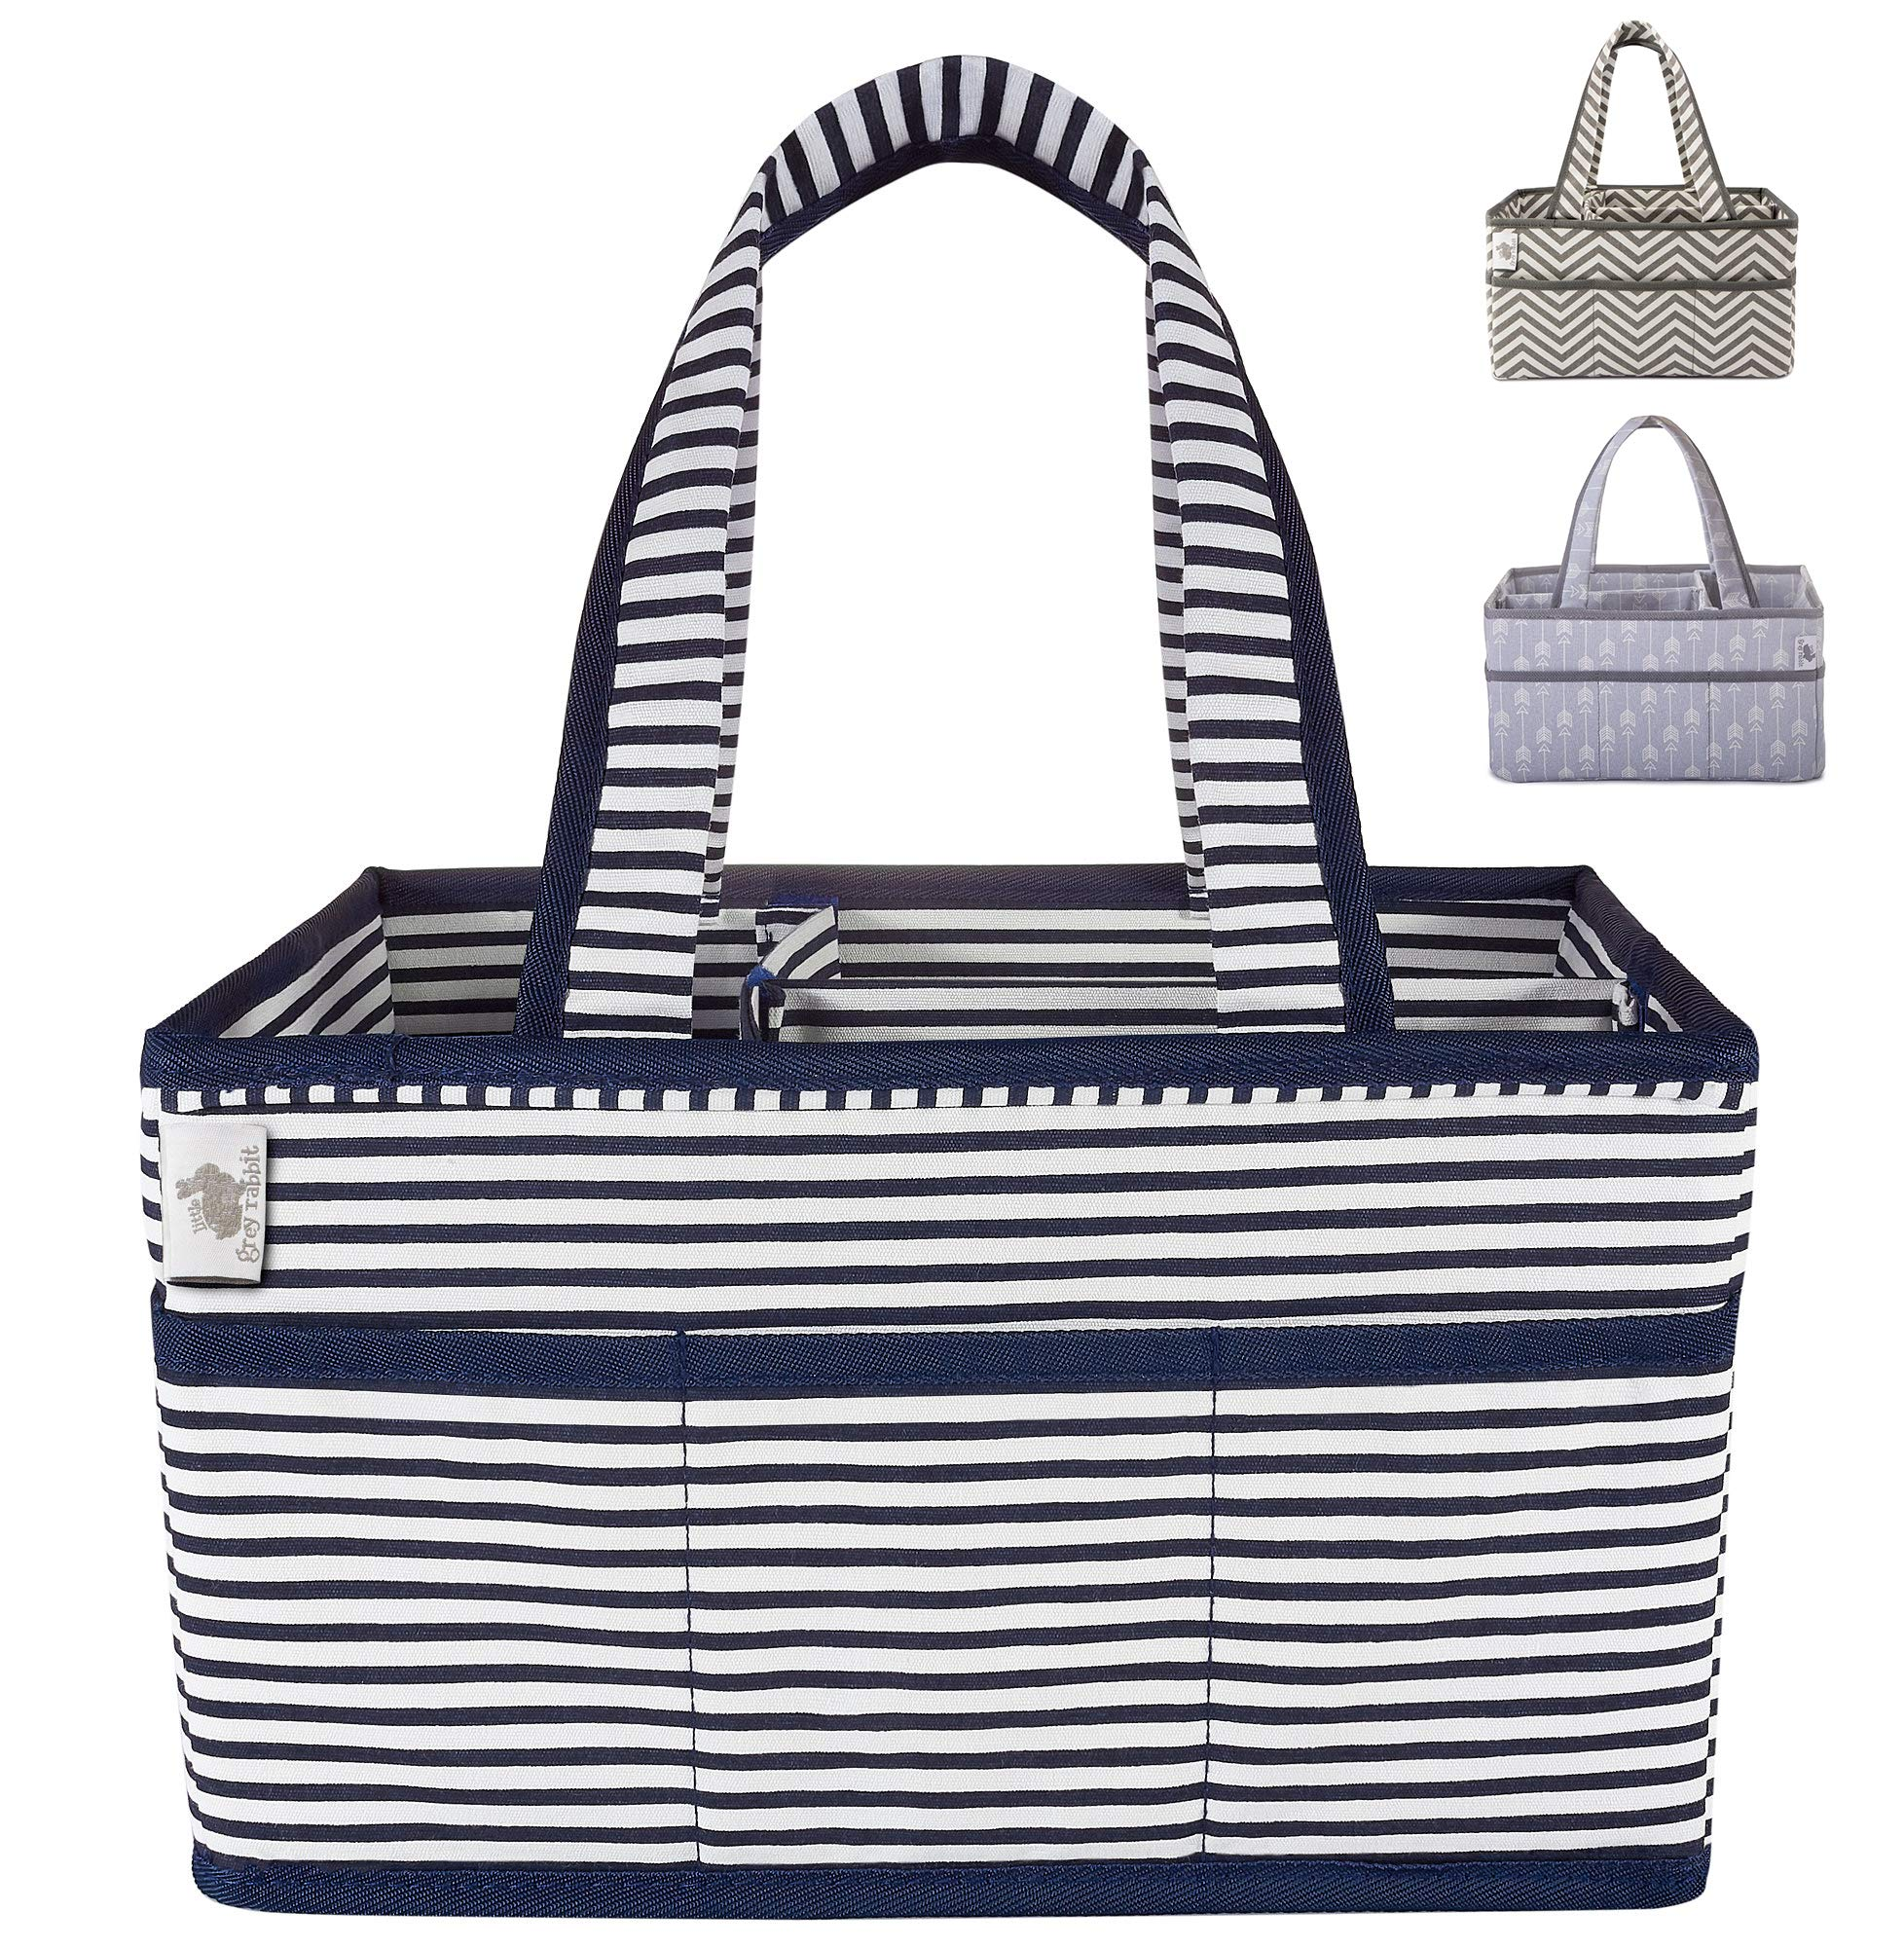 Little Grey Rabbit Premium Baby Diaper Caddy | Nursery Storage Bin & Organizer Basket for Infant Items | Holds Diapers, Lotions, Wipes, More | Perfect Baby Shower Gift | Navy & White Stripe by Little Grey Rabbit